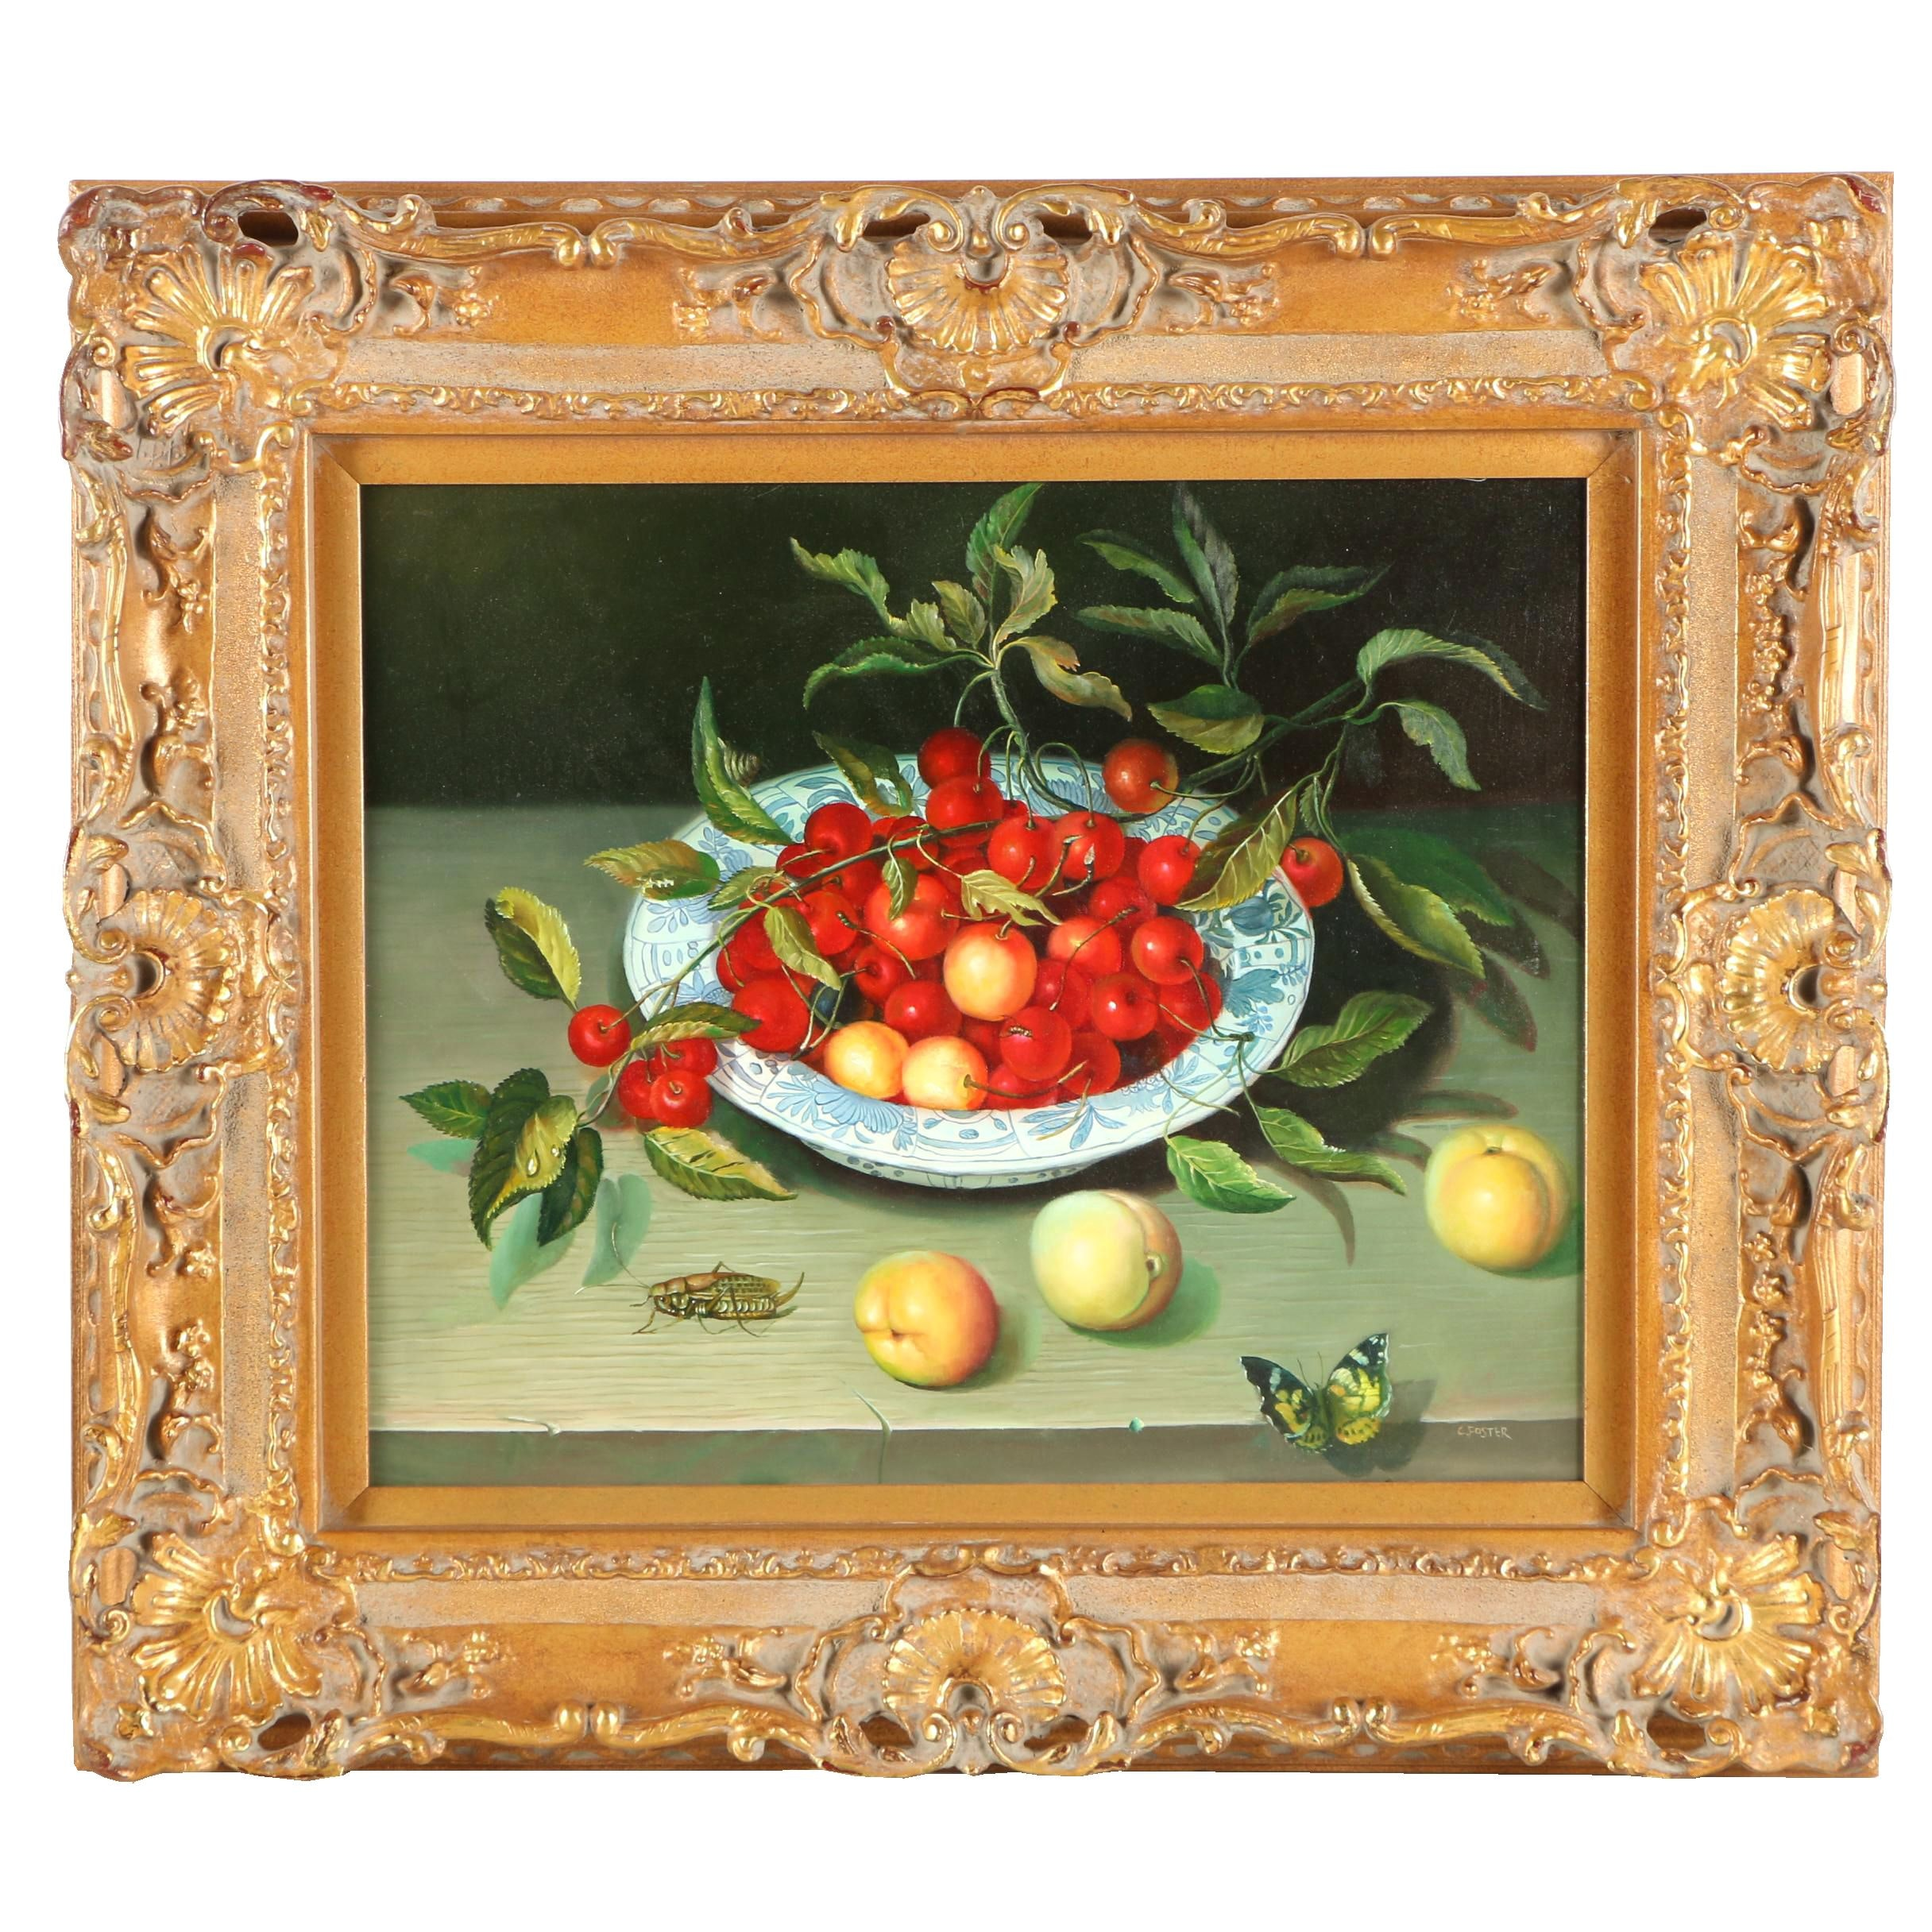 C. Foster Oil Still Life Painting of Cherries